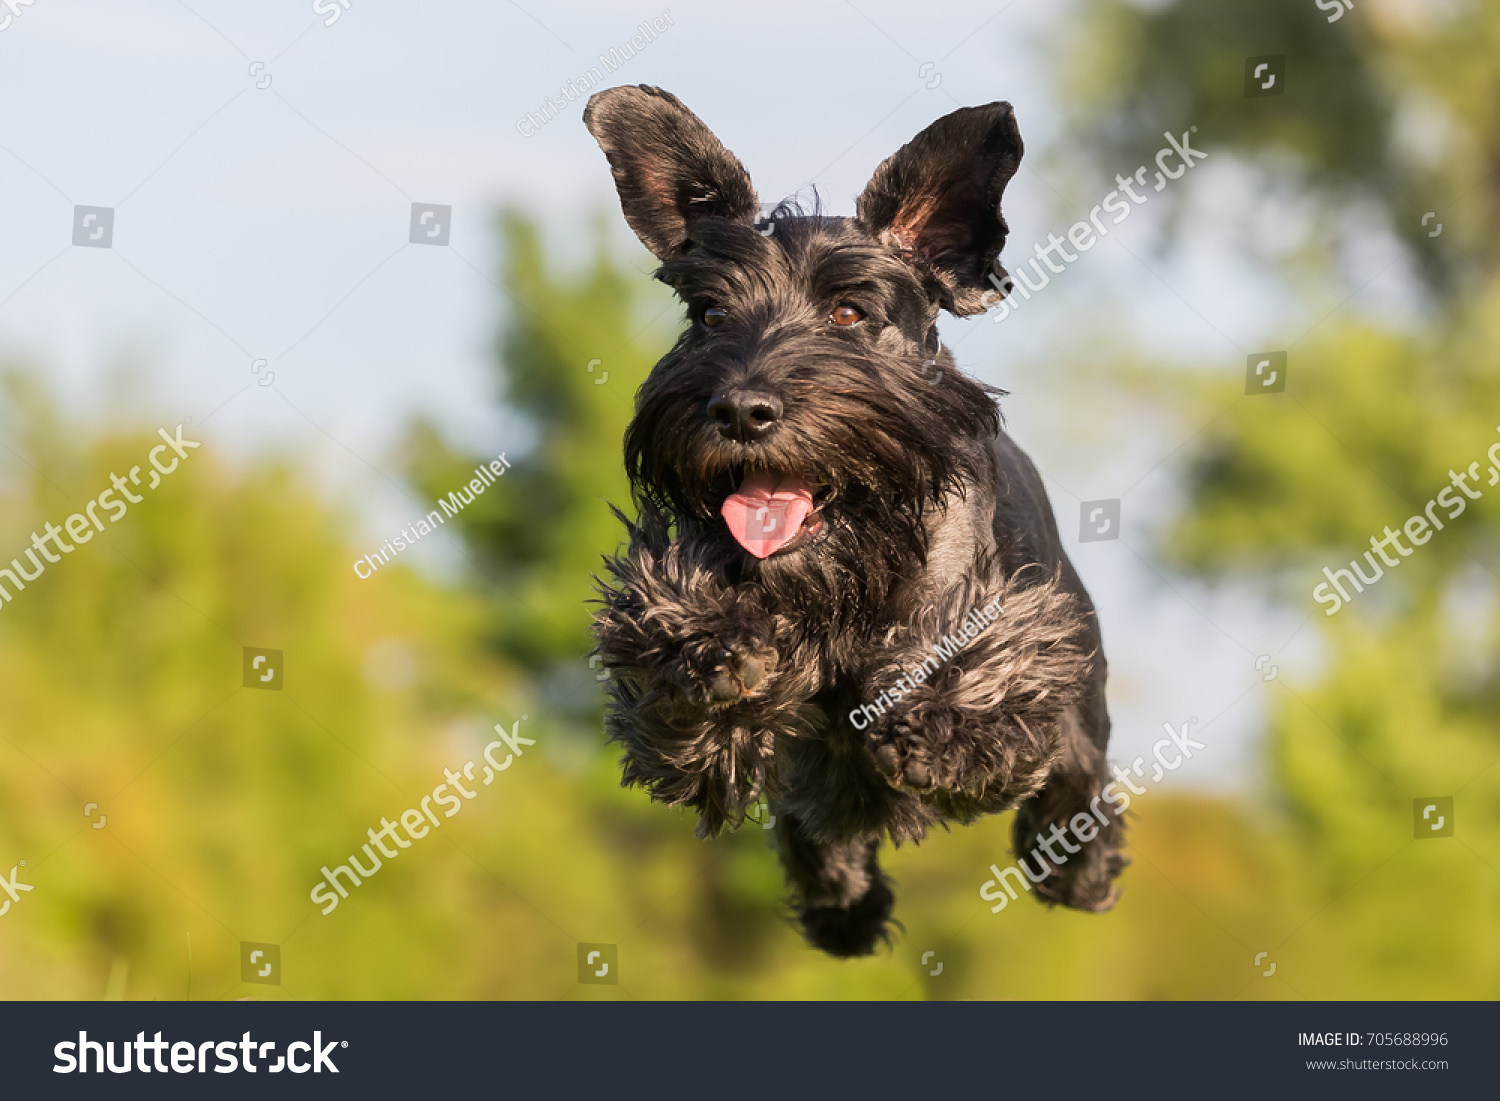 picture of a flying black standard schnauzer dog #705688996